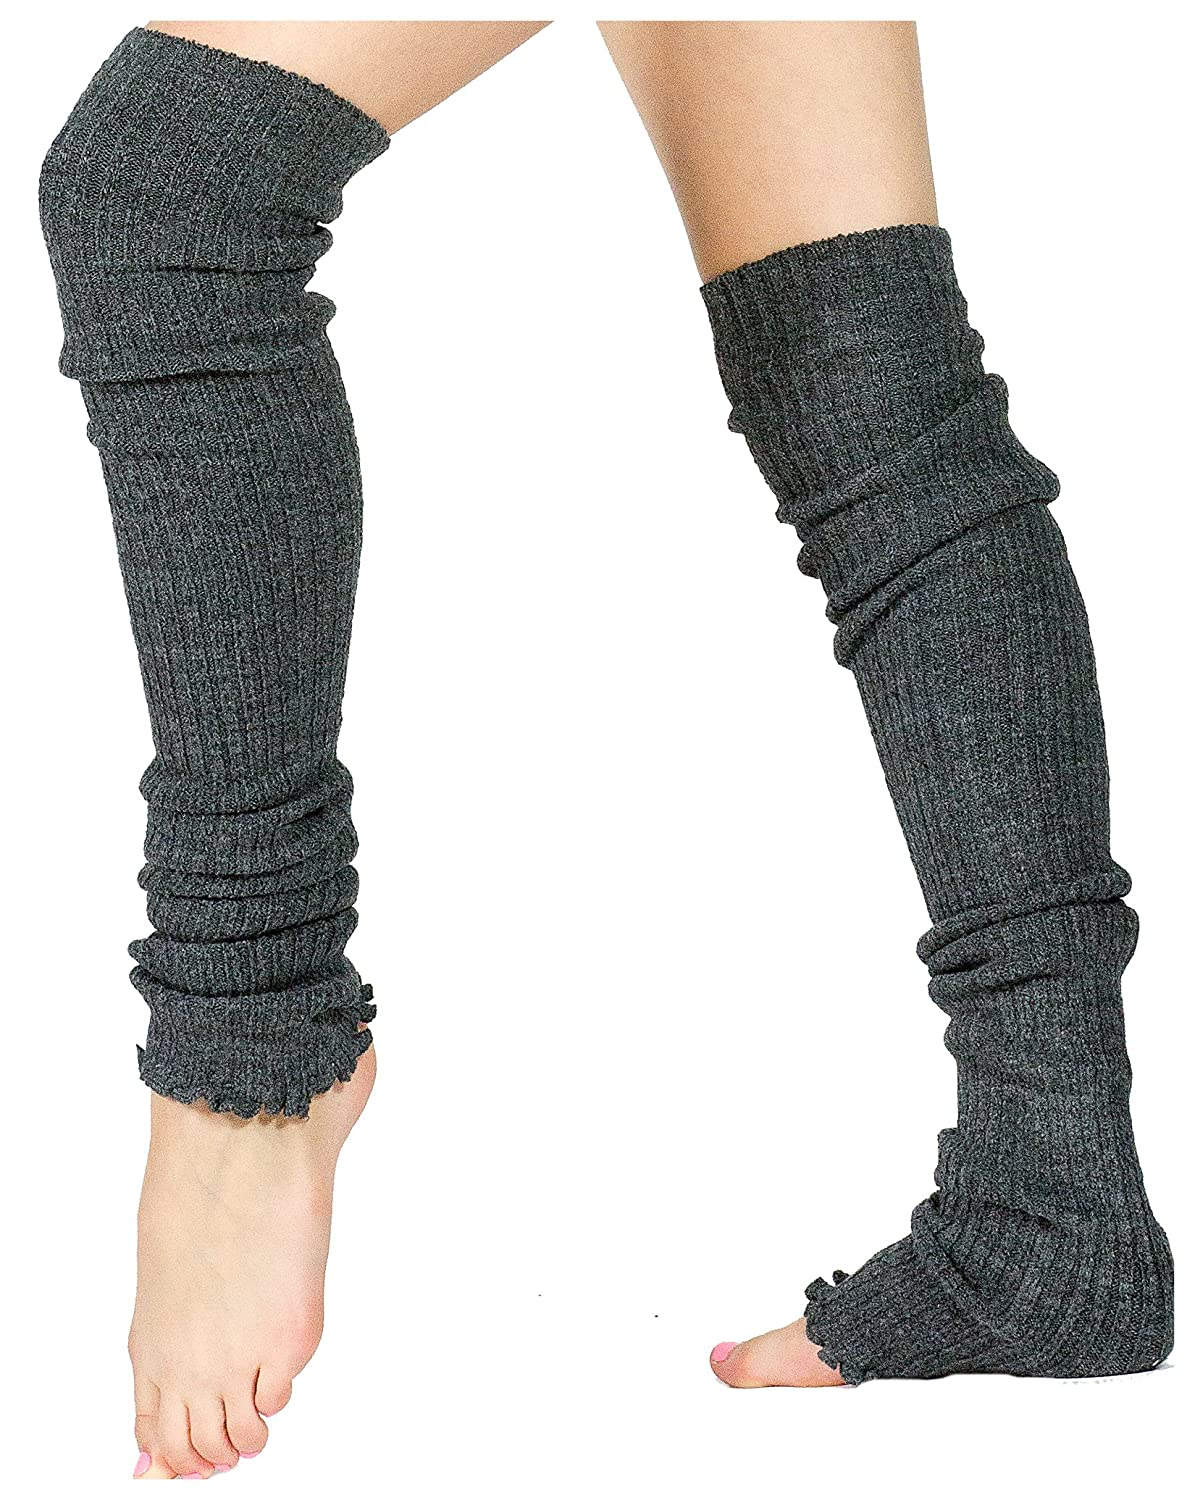 7896e4f9c6230 Thigh High Leg Warmers, Stretch Knit, Ribbed, High Quality Knits Made In  USA Warm, Soft, Stretchy & Reportedly Addictive, Brave Winter Chills In  Comfort ...